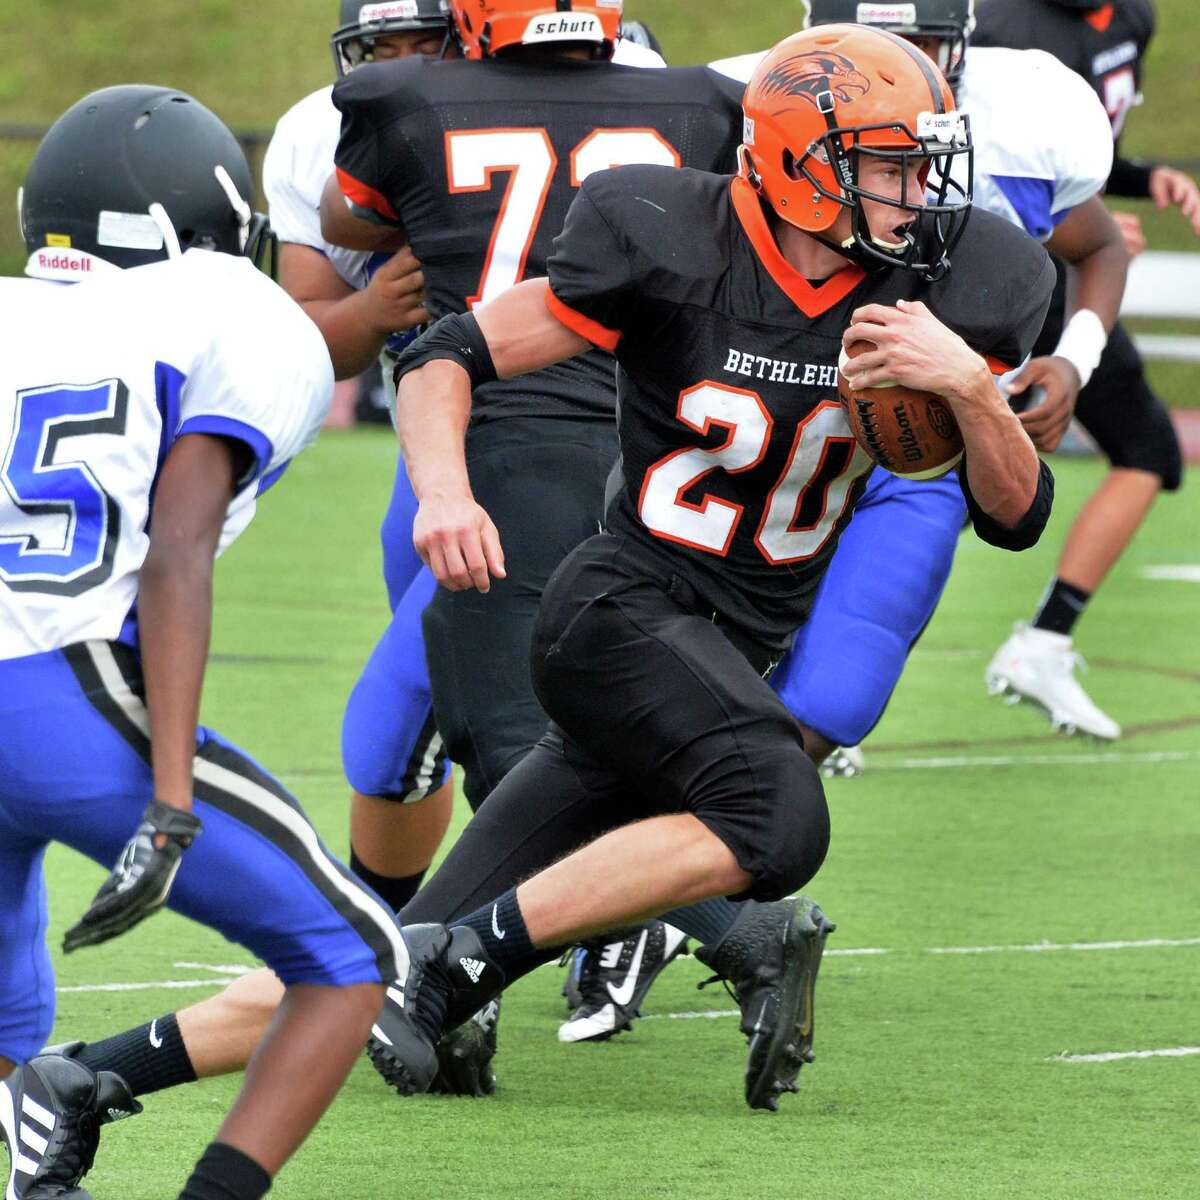 Bethlehem's #20 Ben Zonca gains ground during Saturday's game against Albany High Sept. 6, 2014, at Union College's Frank Bailey Field in Schenectady,NY. (John Carl D'Annibale / Times Union)